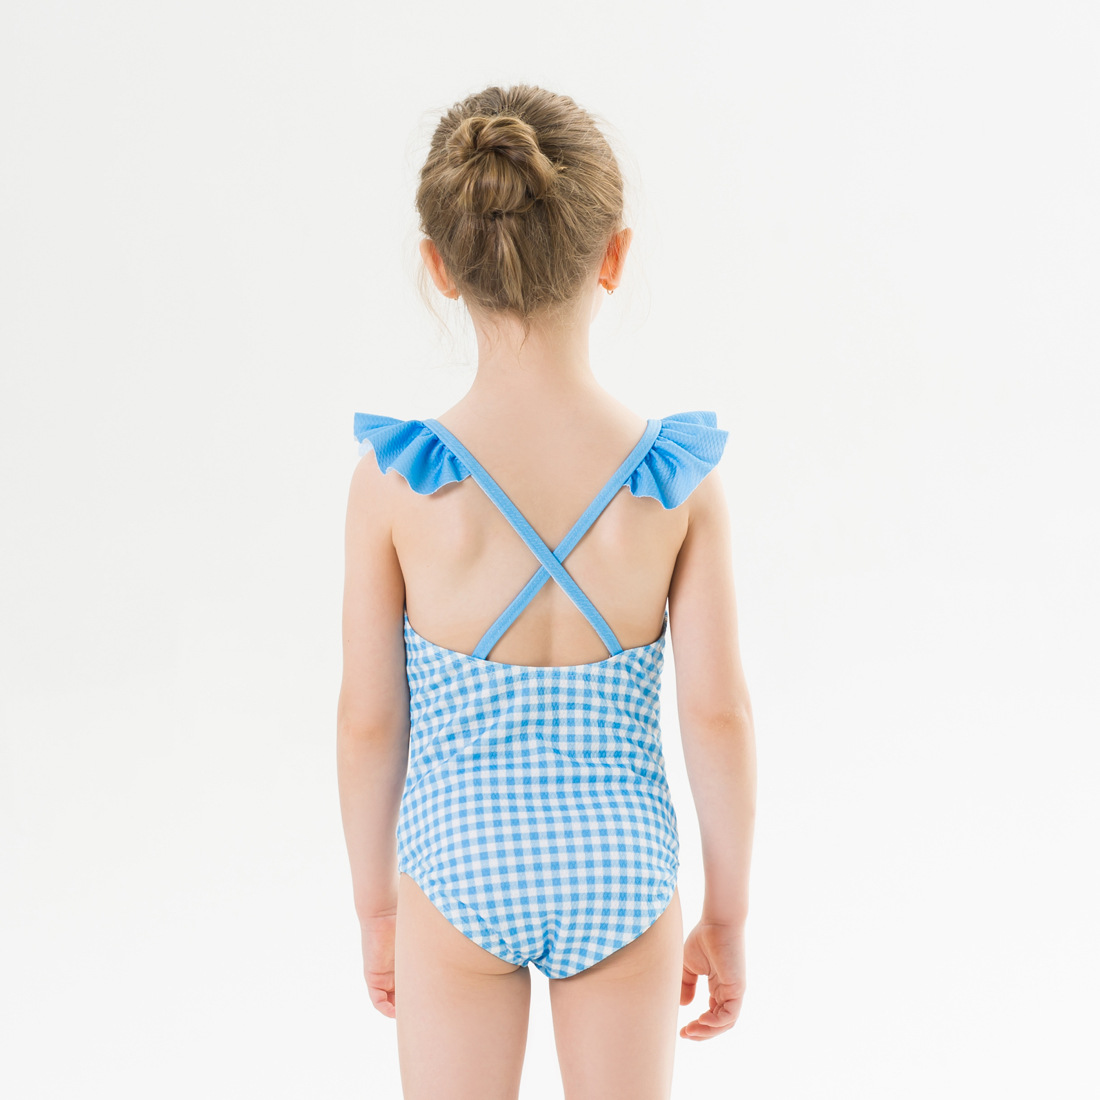 Hot Selling CHILDREN'S Swimsuit Baby One-piece Swimming Suit 2020 New Beachwear Europe And America